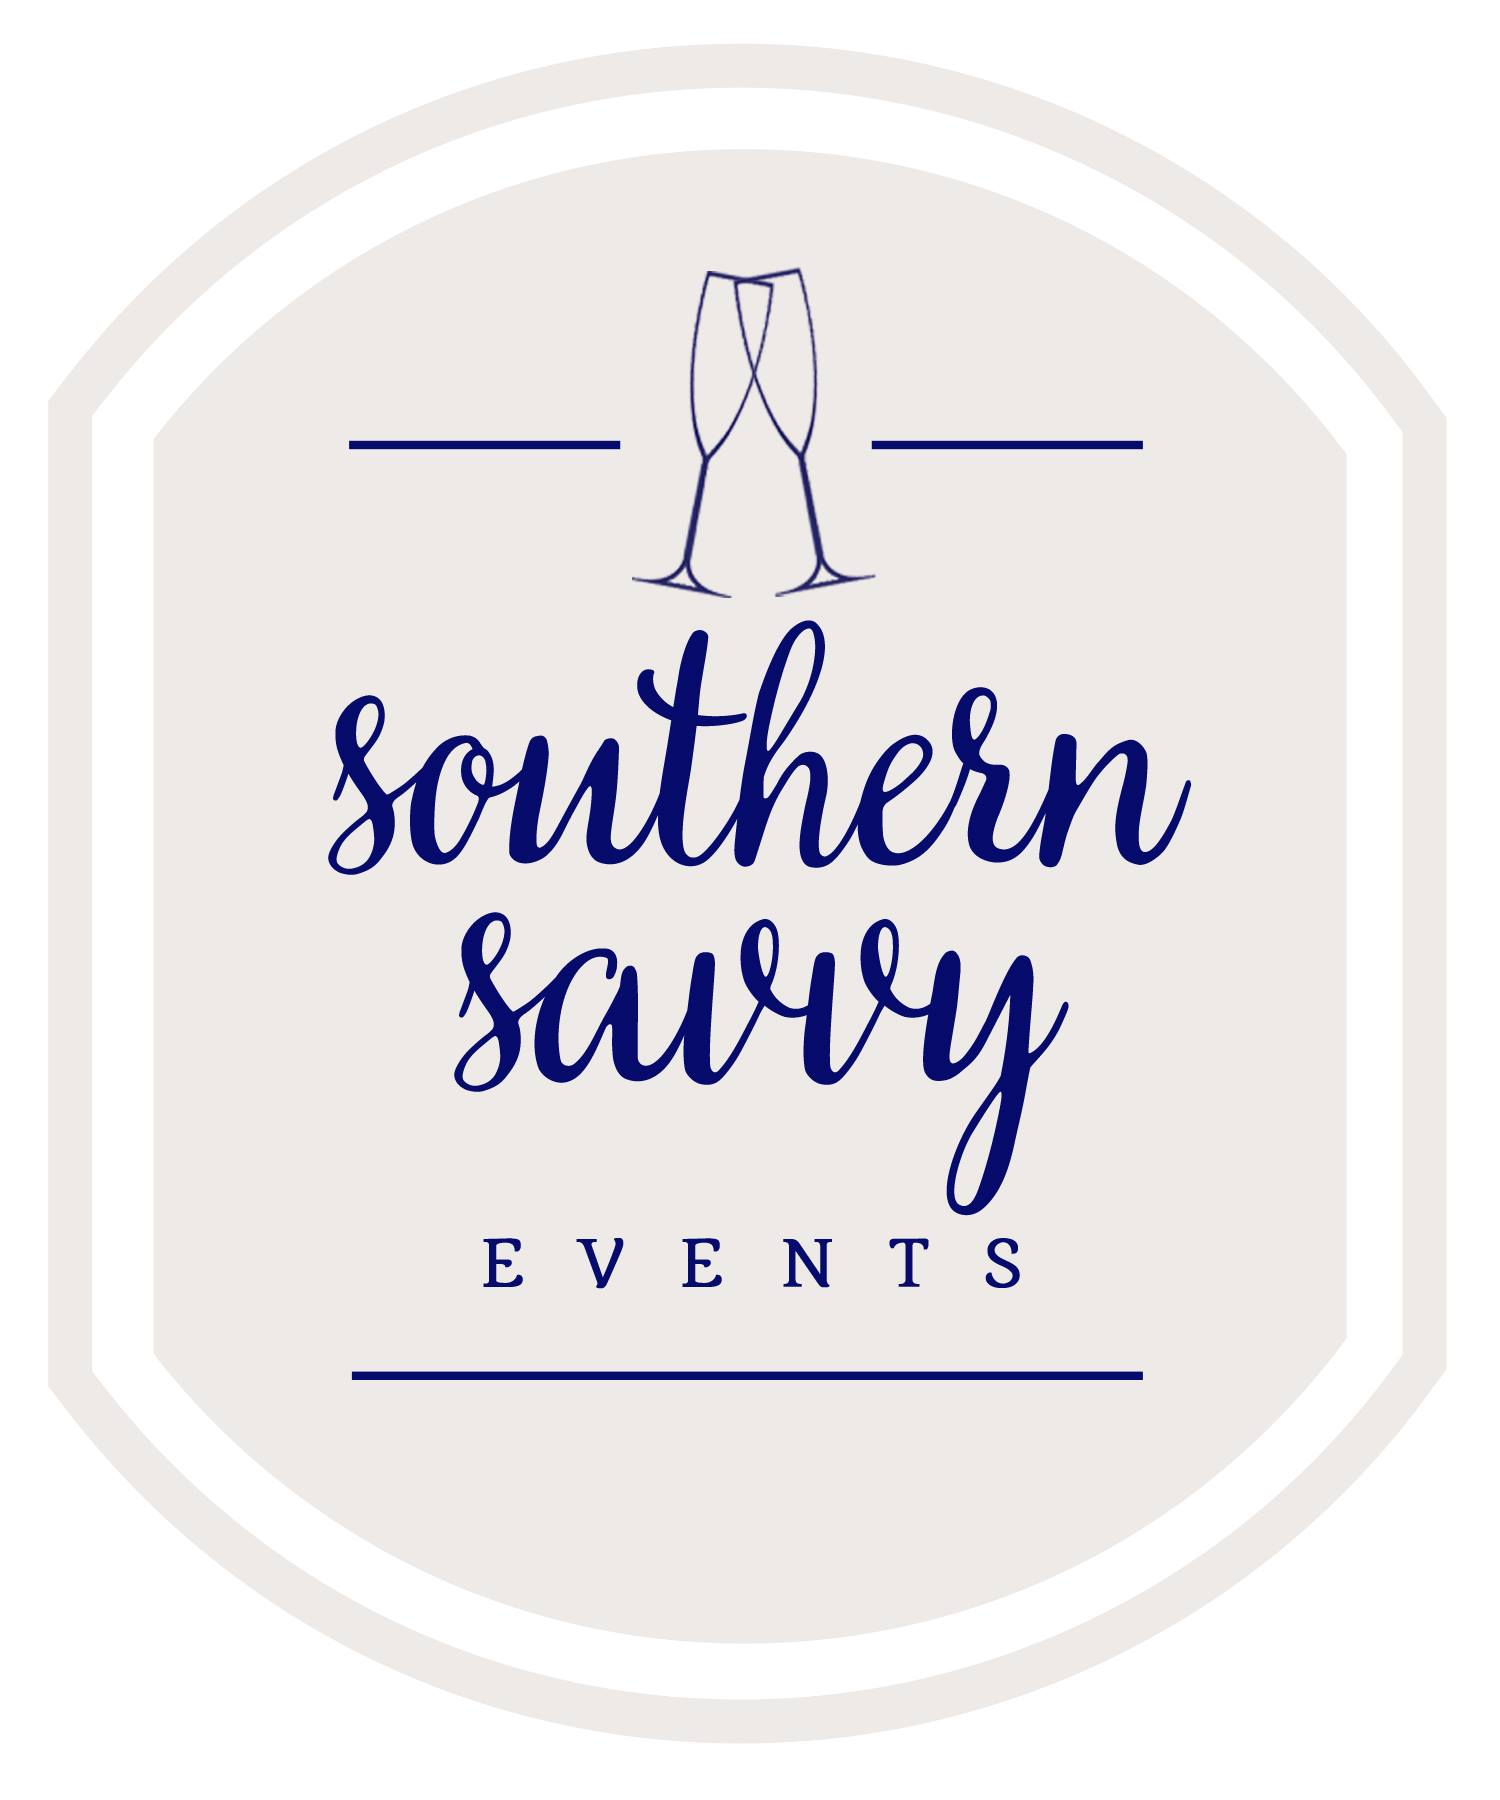 Southern Savvy Events